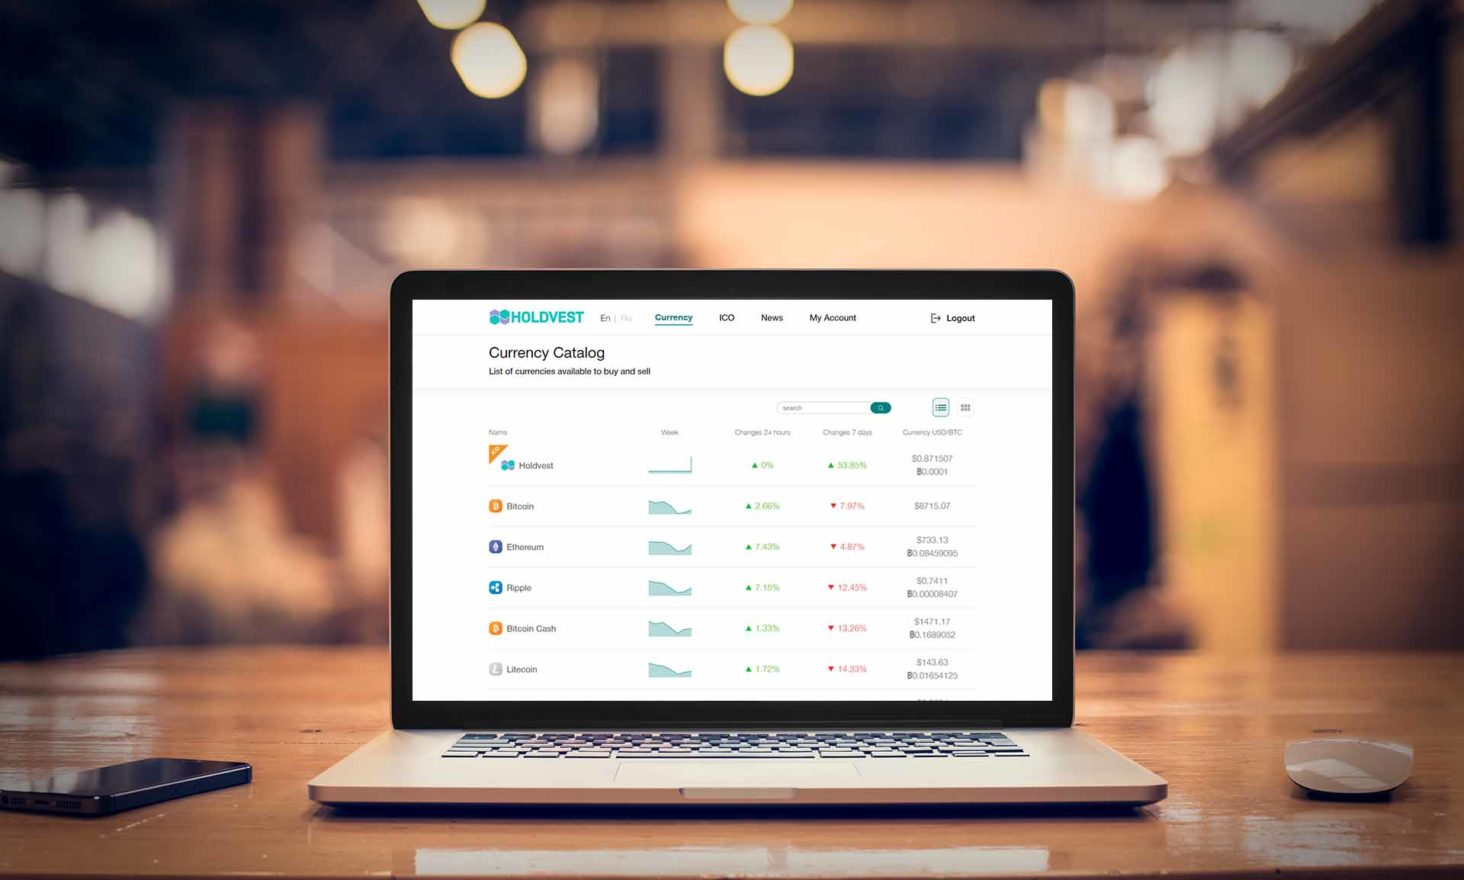 The Crypto Trader's Secret: How to Buy and Sell Cryptocurrencies at the Best Prices with Holdvest